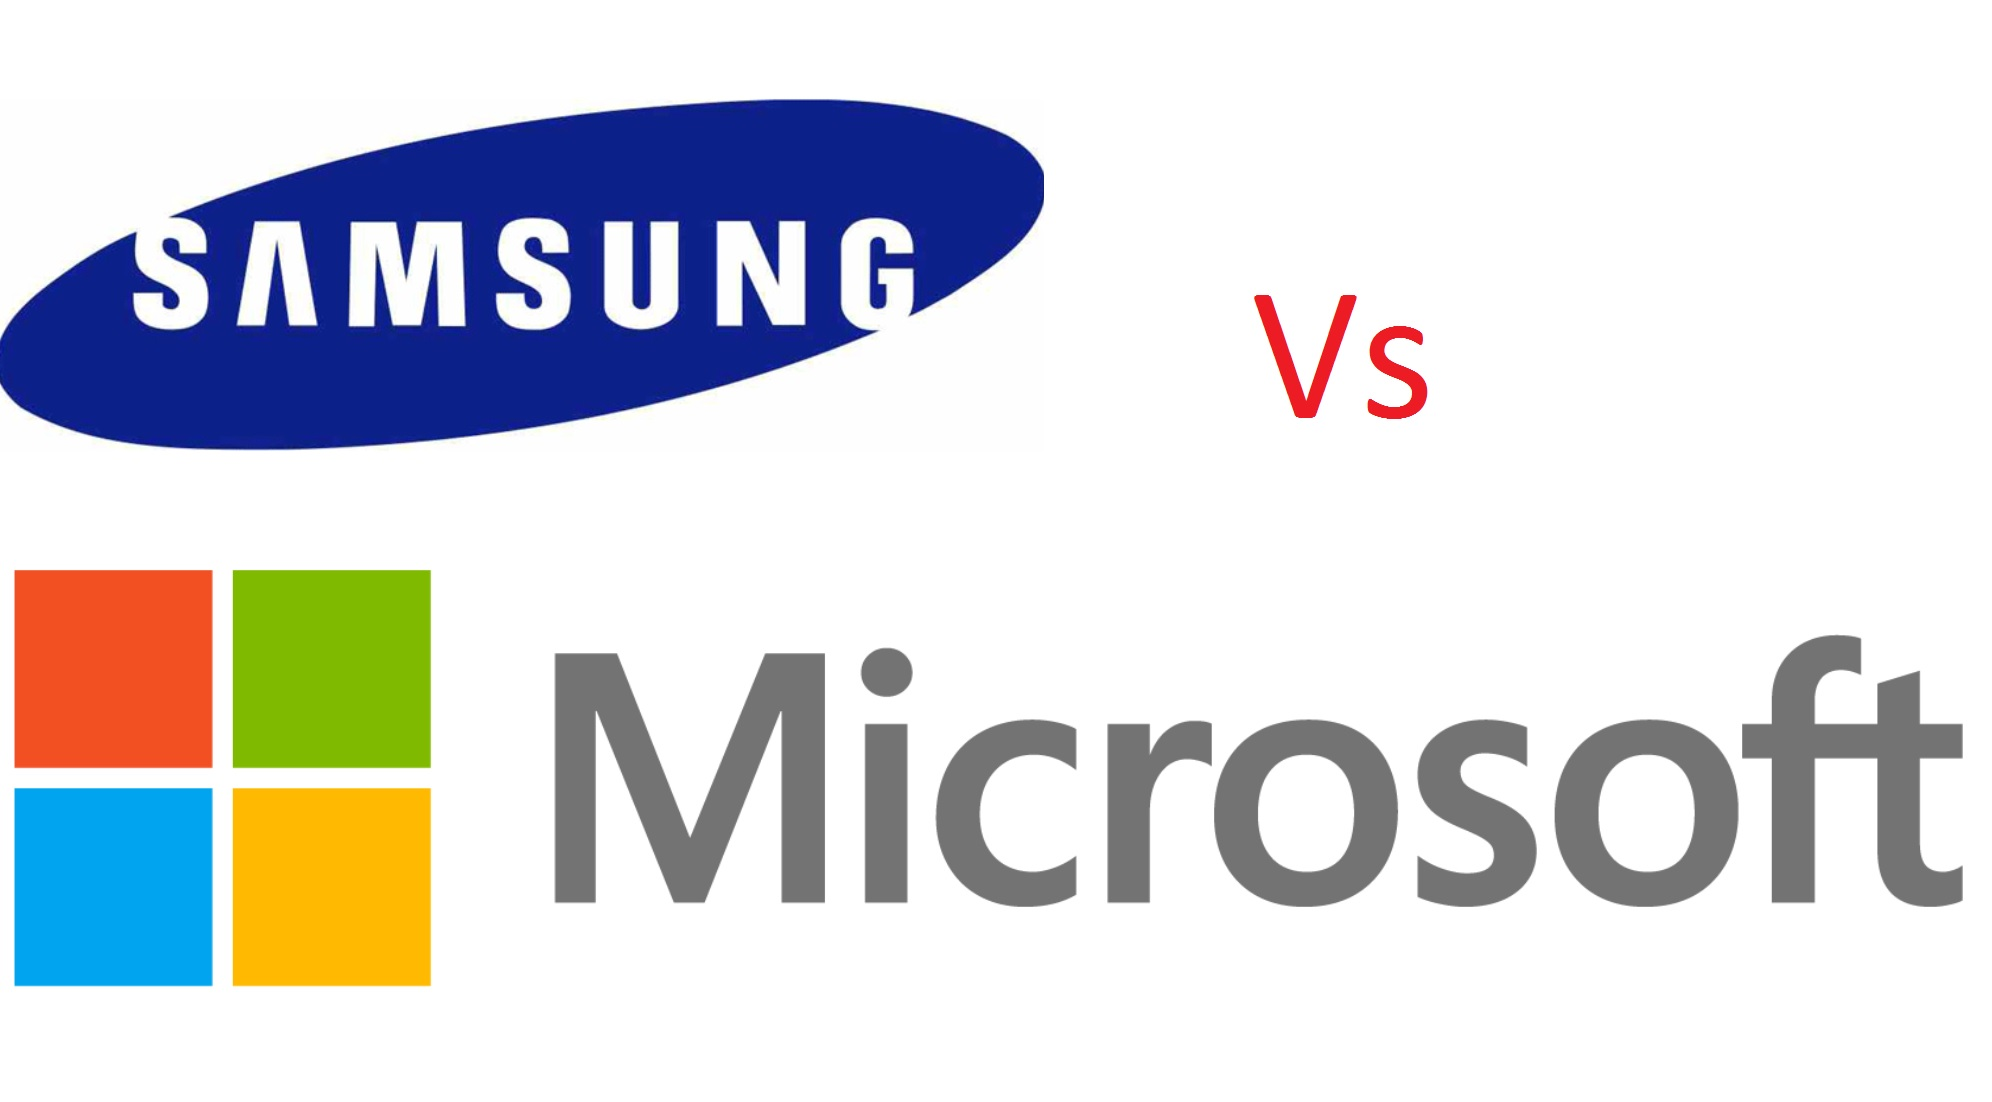 MS vs Samsung